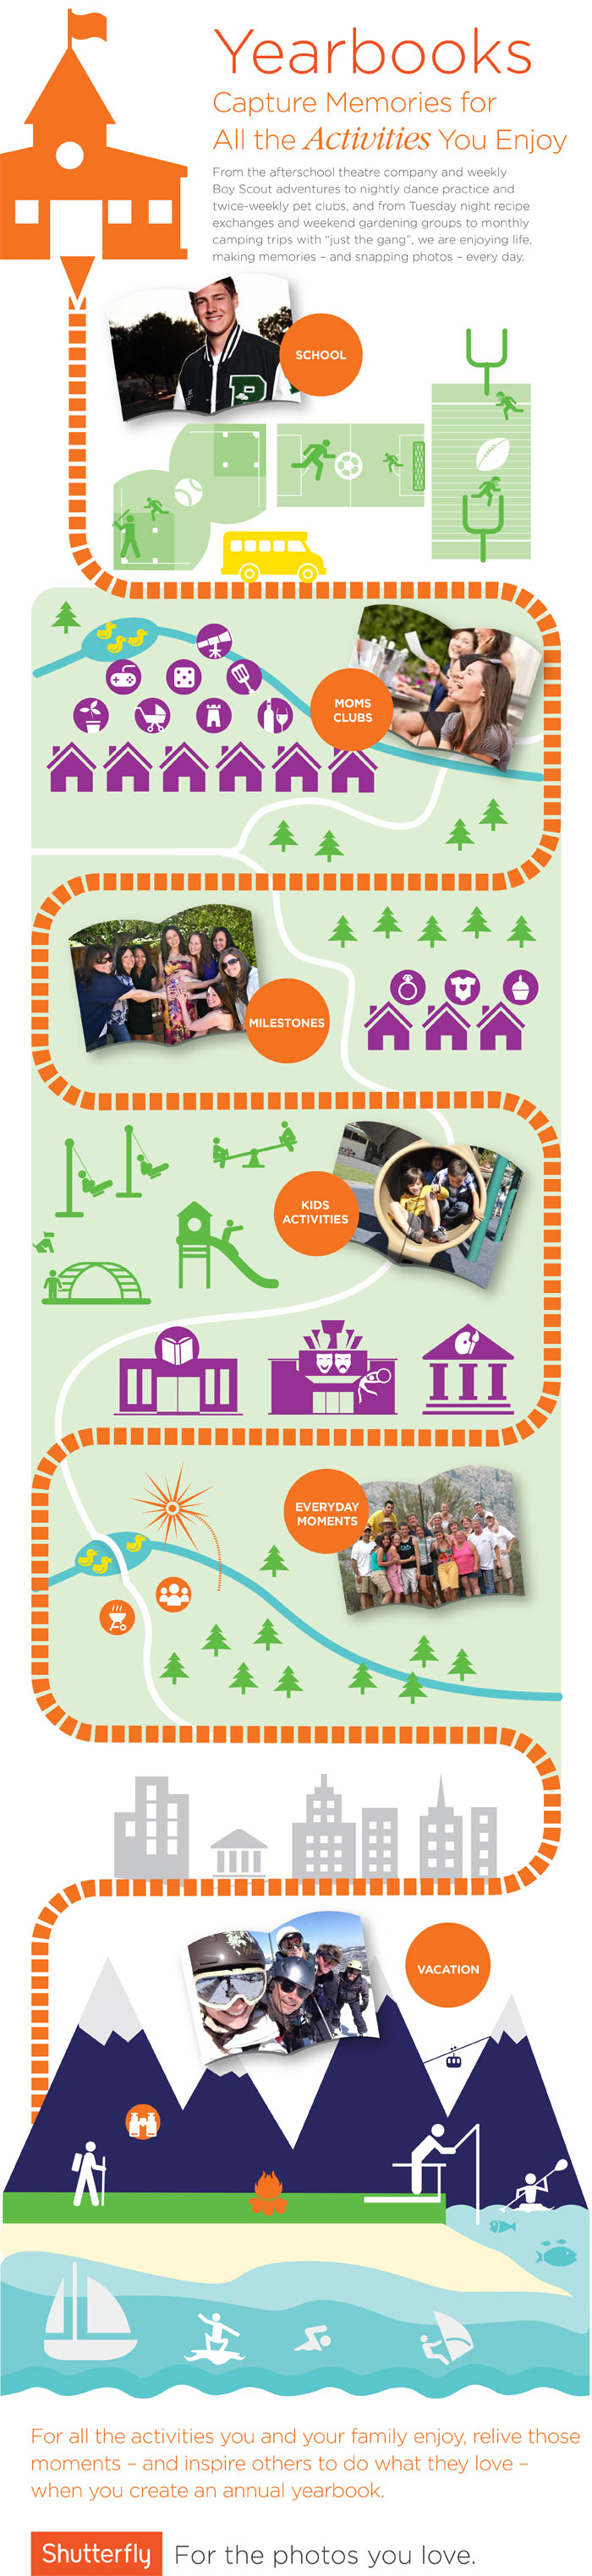 Shutterfly Yearbook Infographic